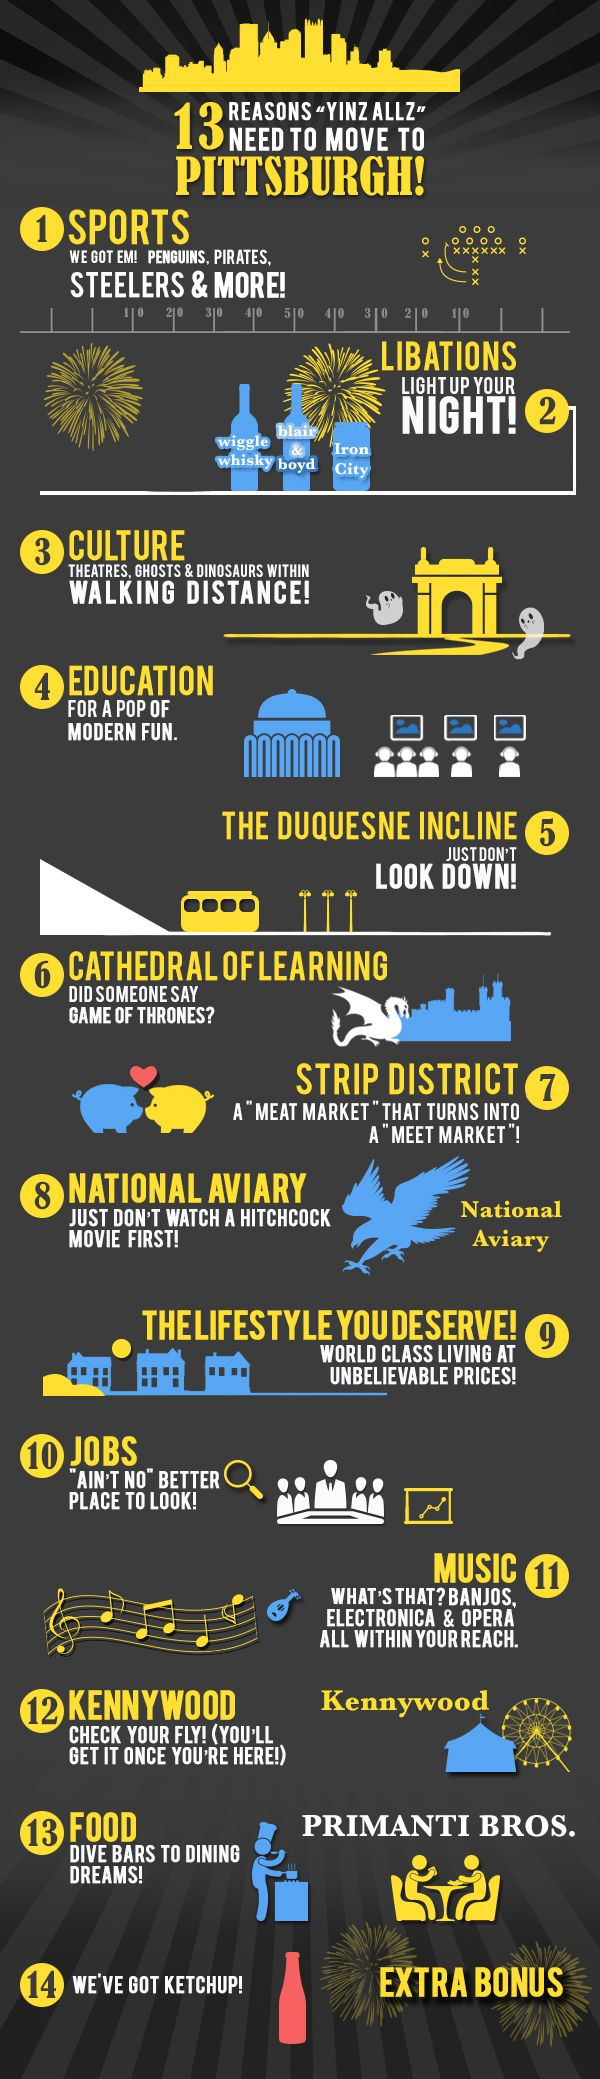 13 Reasons to Move to Pittsburgh Infographic